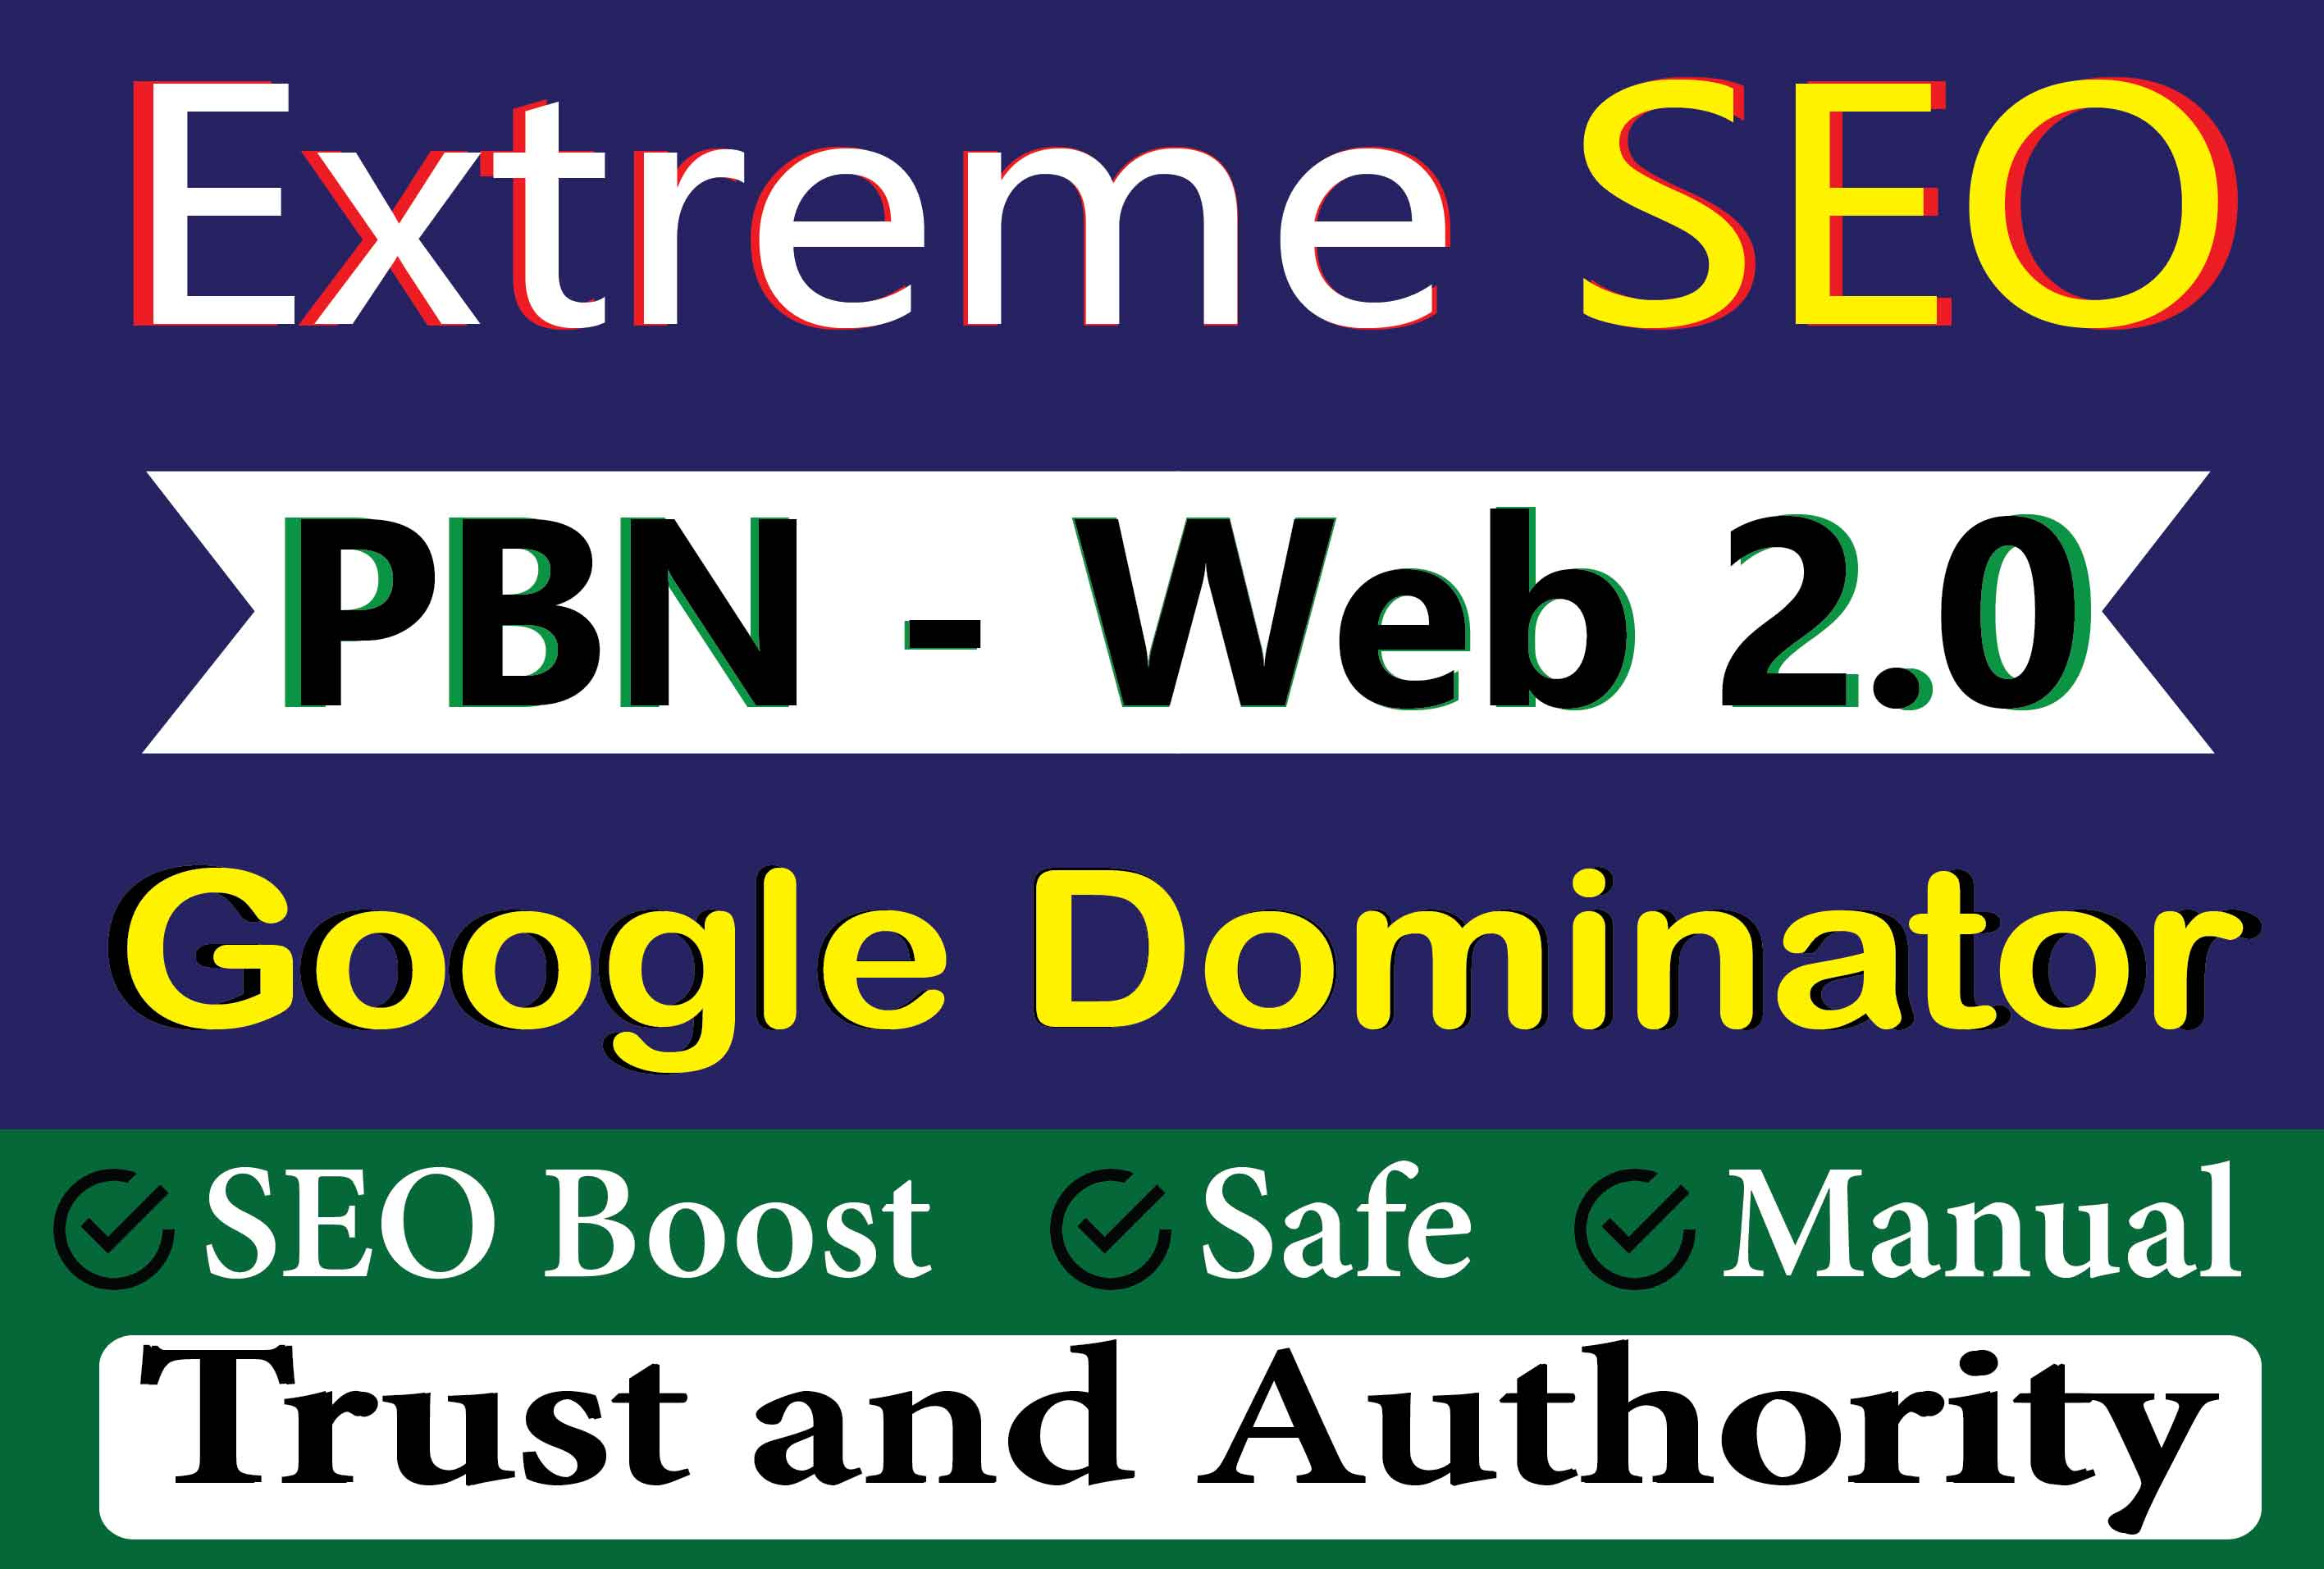 PBN Backlinks- Top 30 Authority Web2.0 Blog Creation For your Website or Video ranking